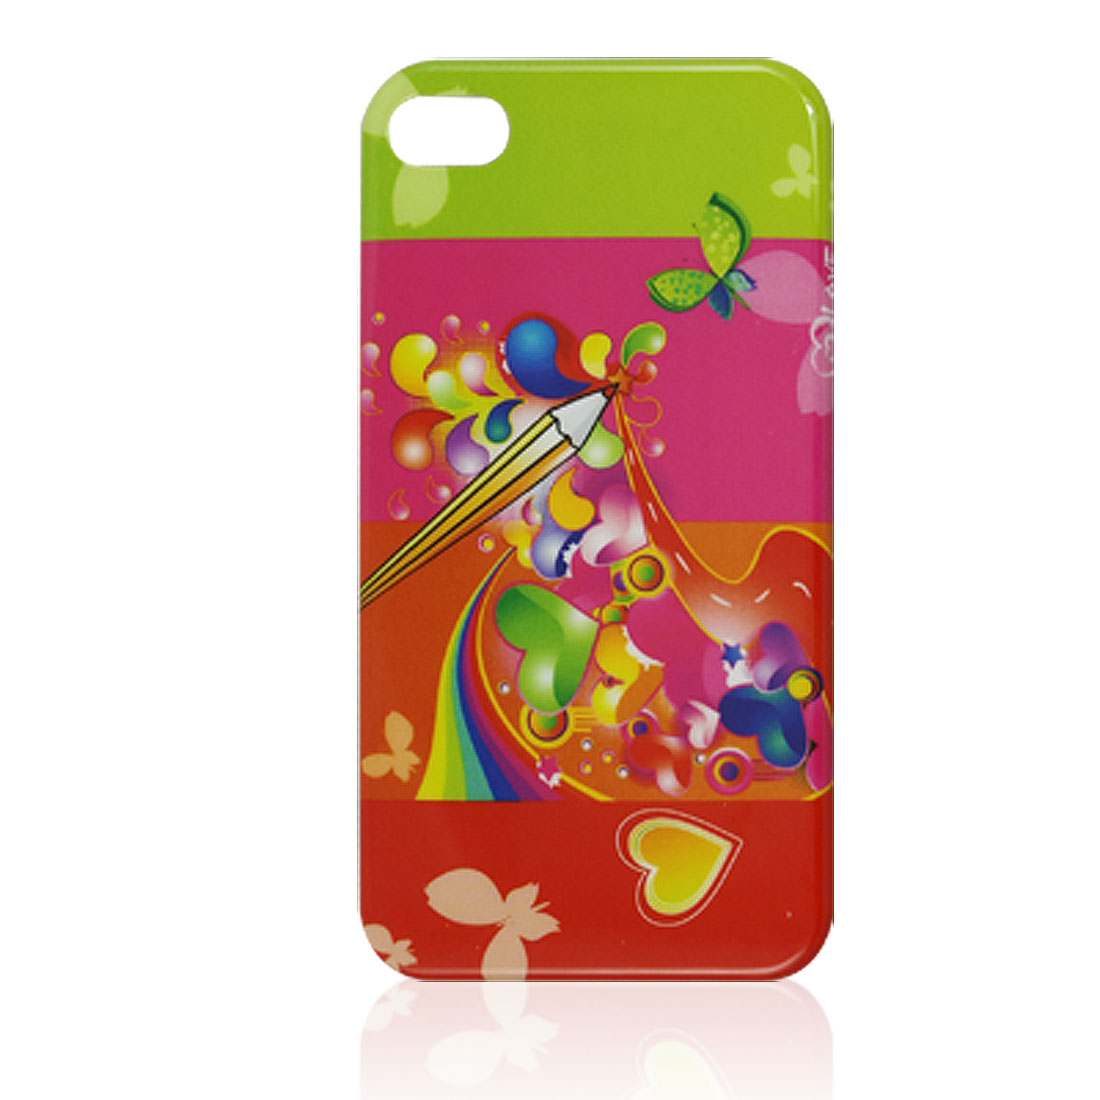 Butterfly Heart Pattern Colorful Hard Plastic IMD Back Case for iPhone 4 4G 4S